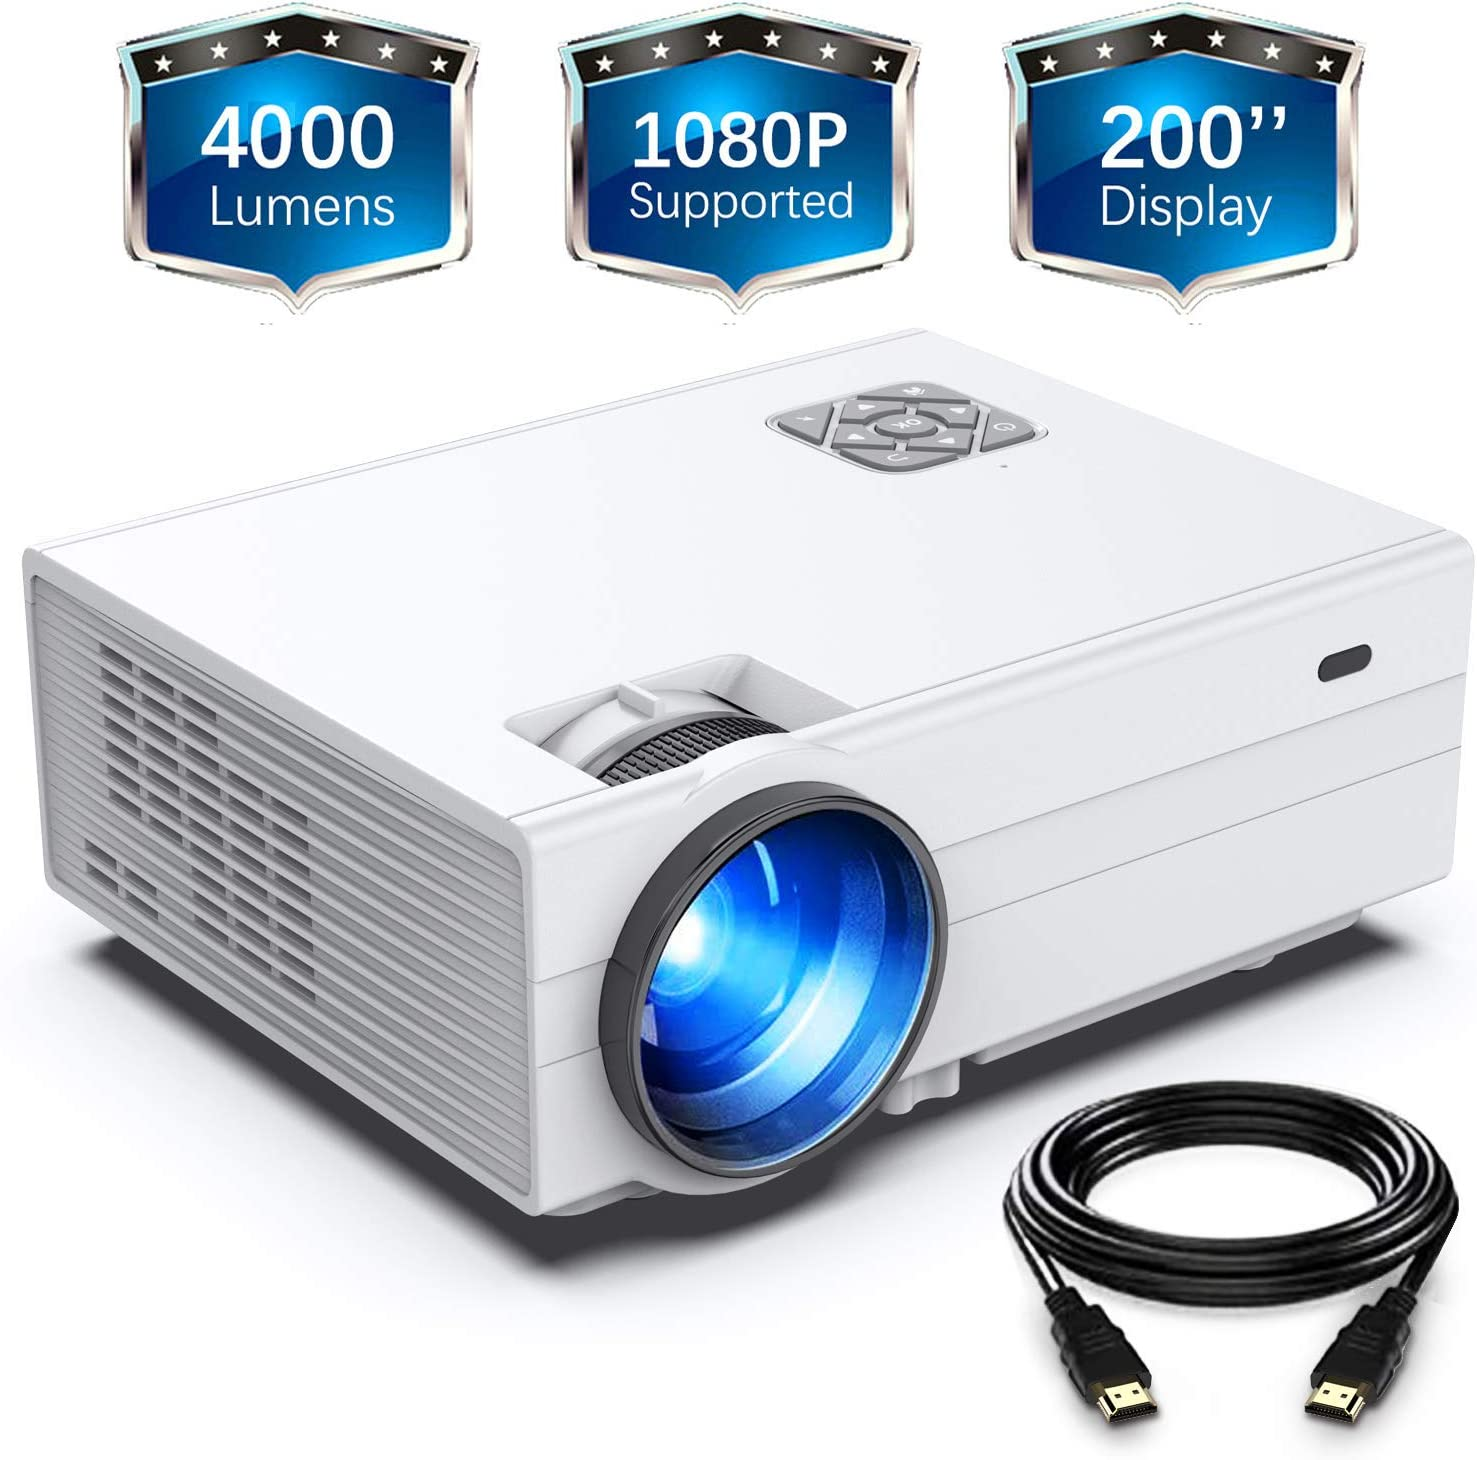 """GIMISONIC Projector, HD 4000 Lux Video Projector with 200"""" Display 60,000 Hrs Led Home Theater Projector Support 1080P,Compatible with Fire TV Stick,PS4, HDMI, VGA, AV and USB"""